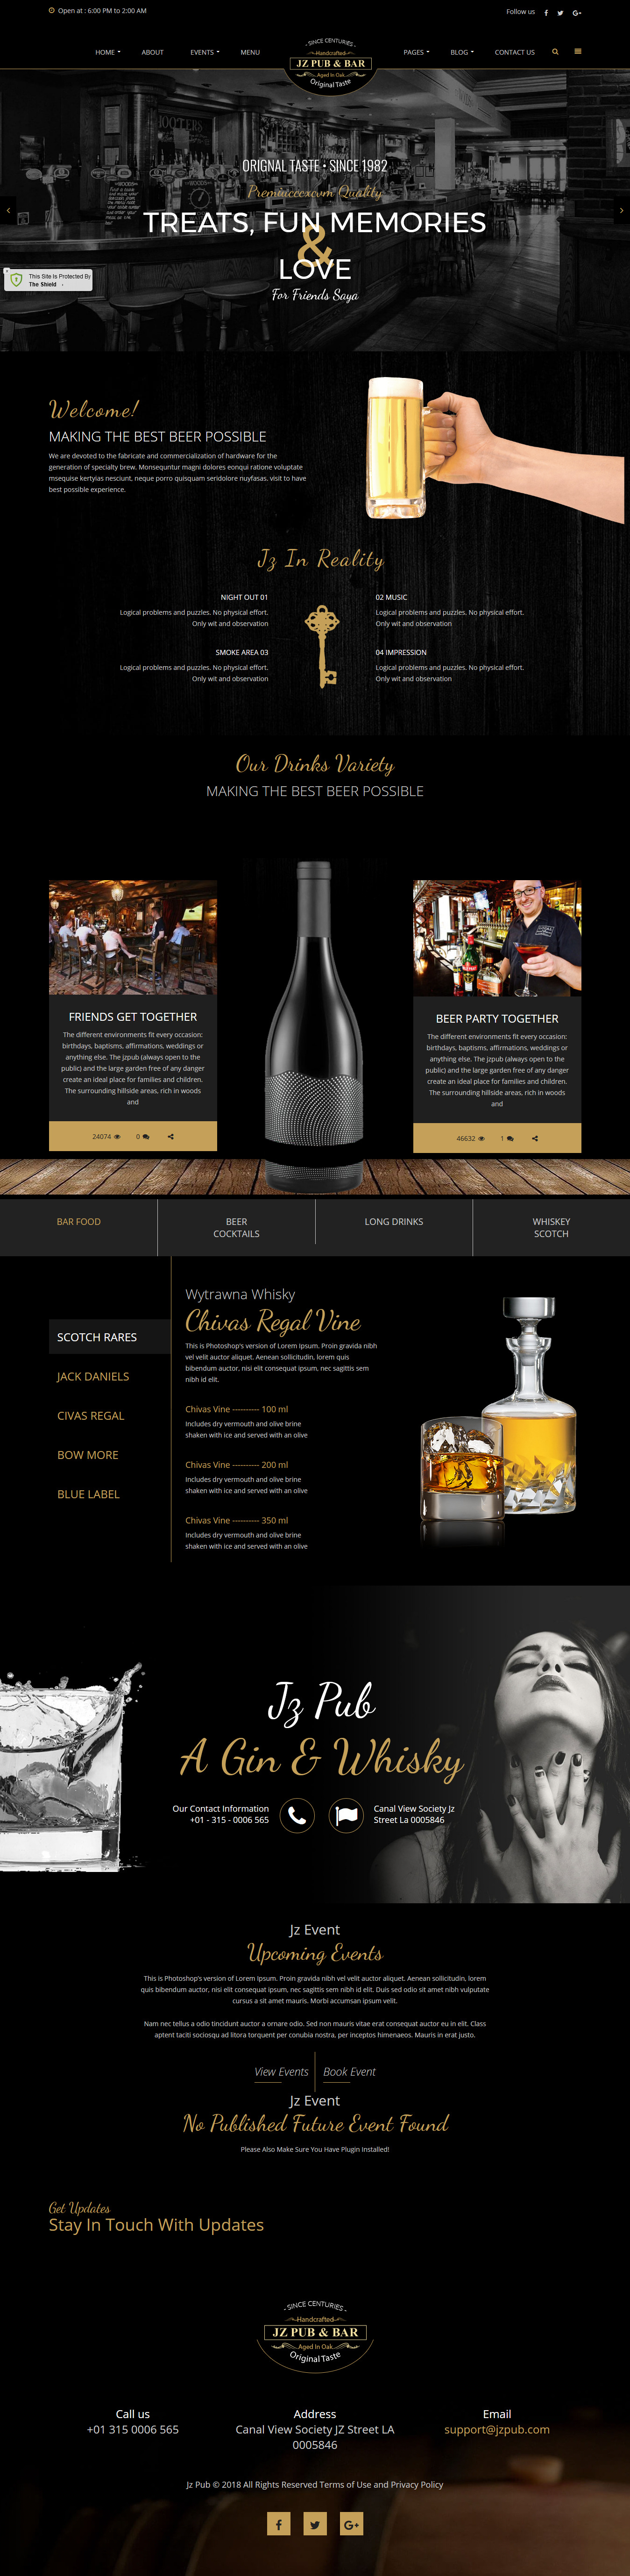 jz pub bar best premium bar pub wordpress theme - 10+ Best Premium Bar and Pub WordPress Themes